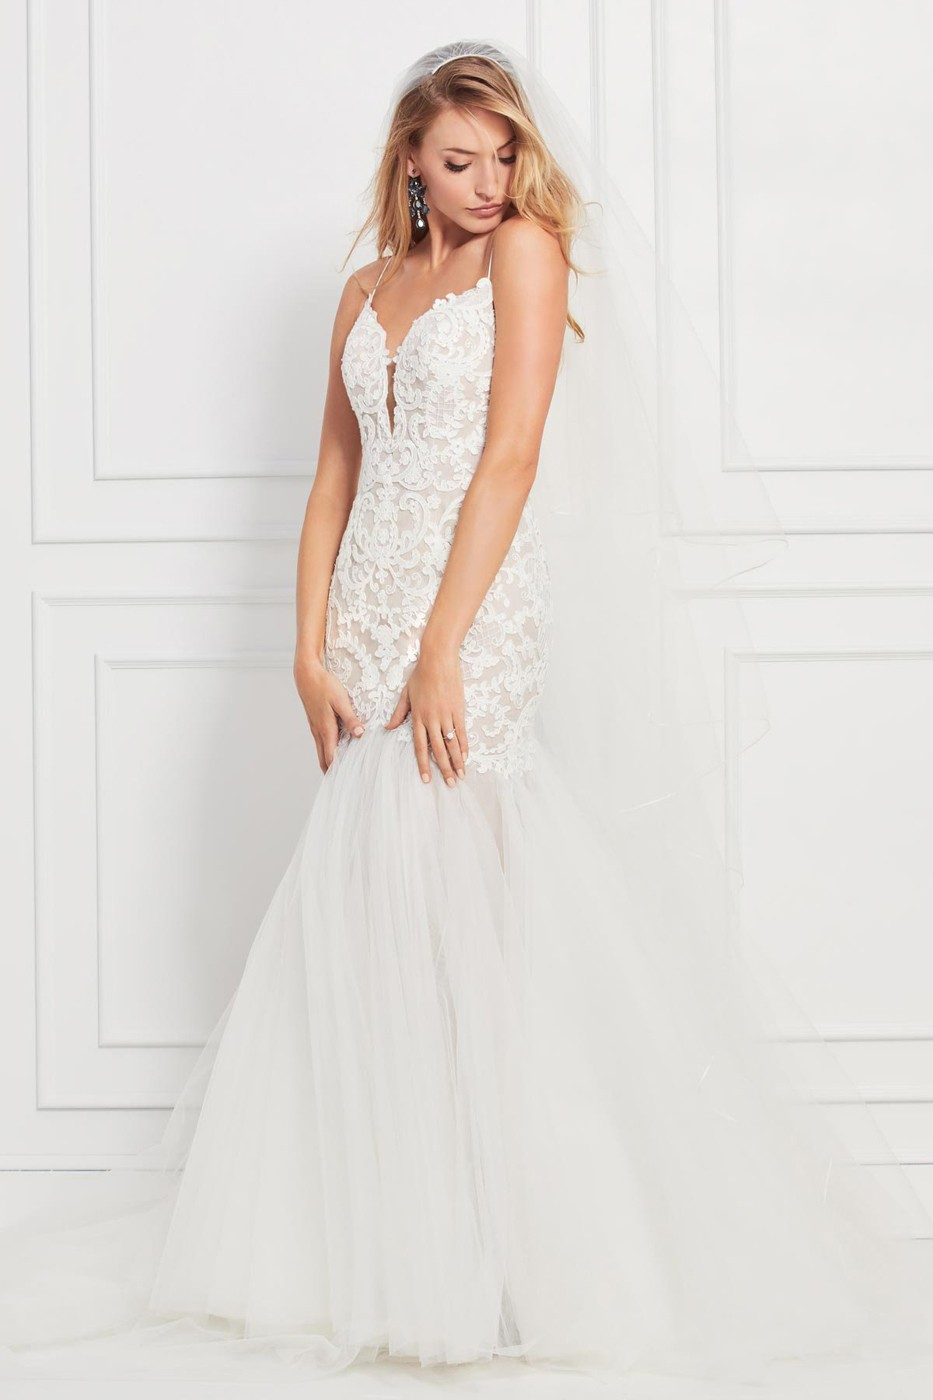 972cf449636 Tap to expand · WTOO - Dress Style 12104B Synclaire Beaded ...